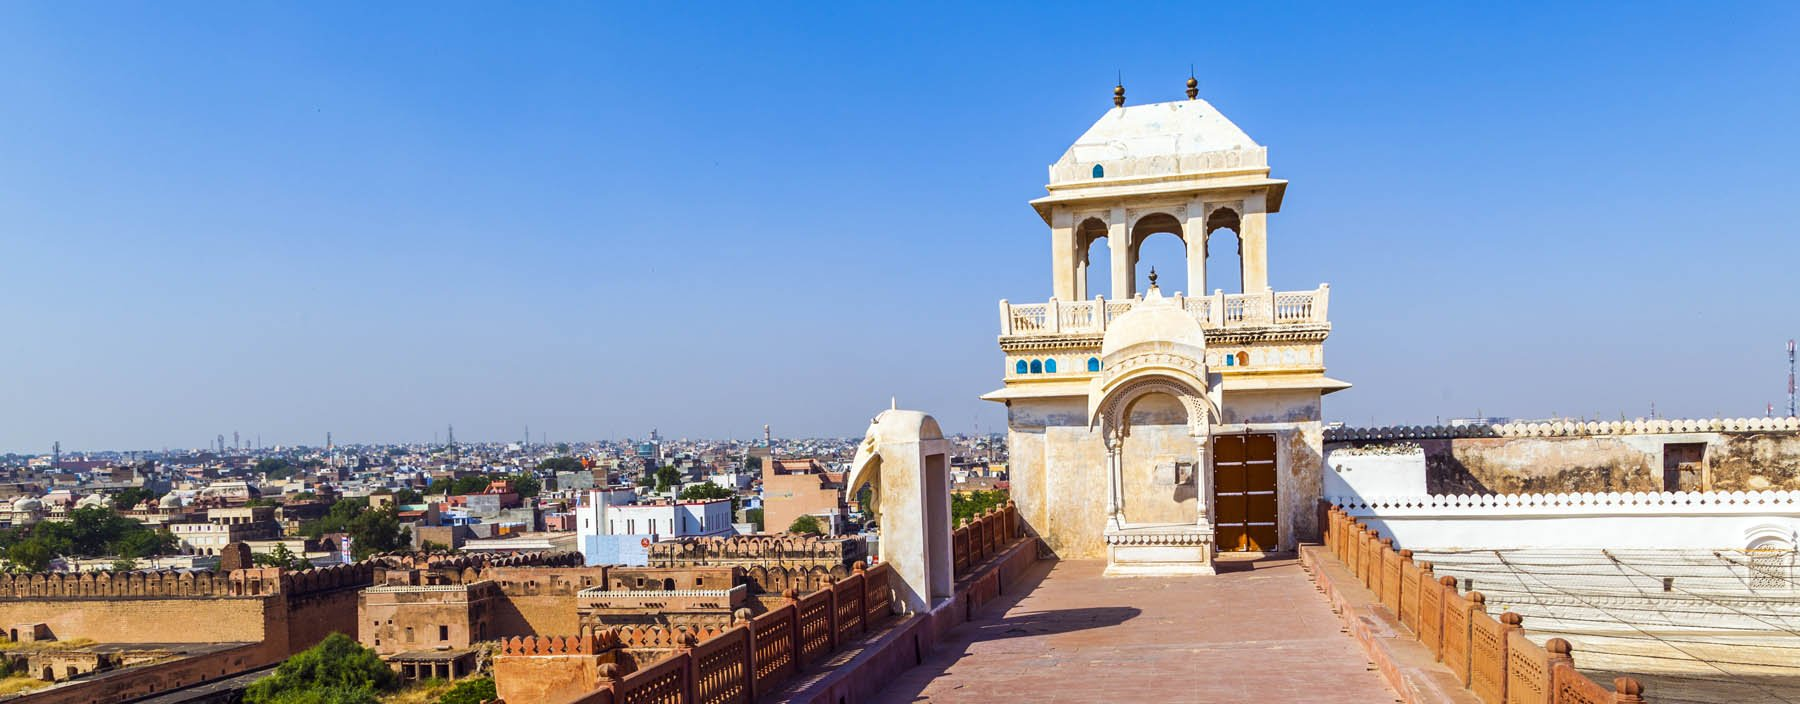 in, bikaner, junagarh fort.jpg